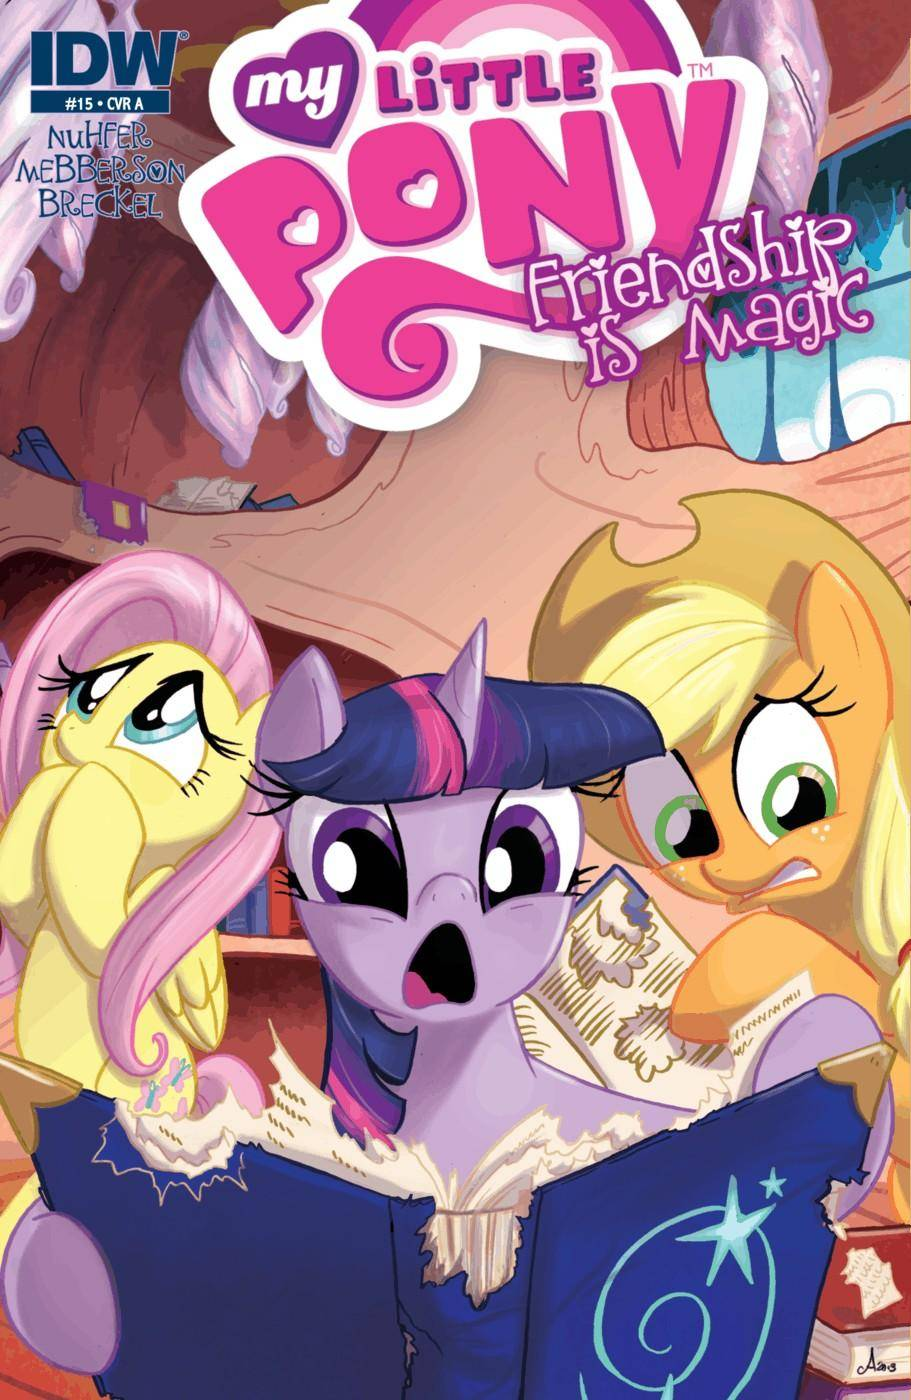 My Little Pony - Friendship is Magic 015 2014 2 covers digital